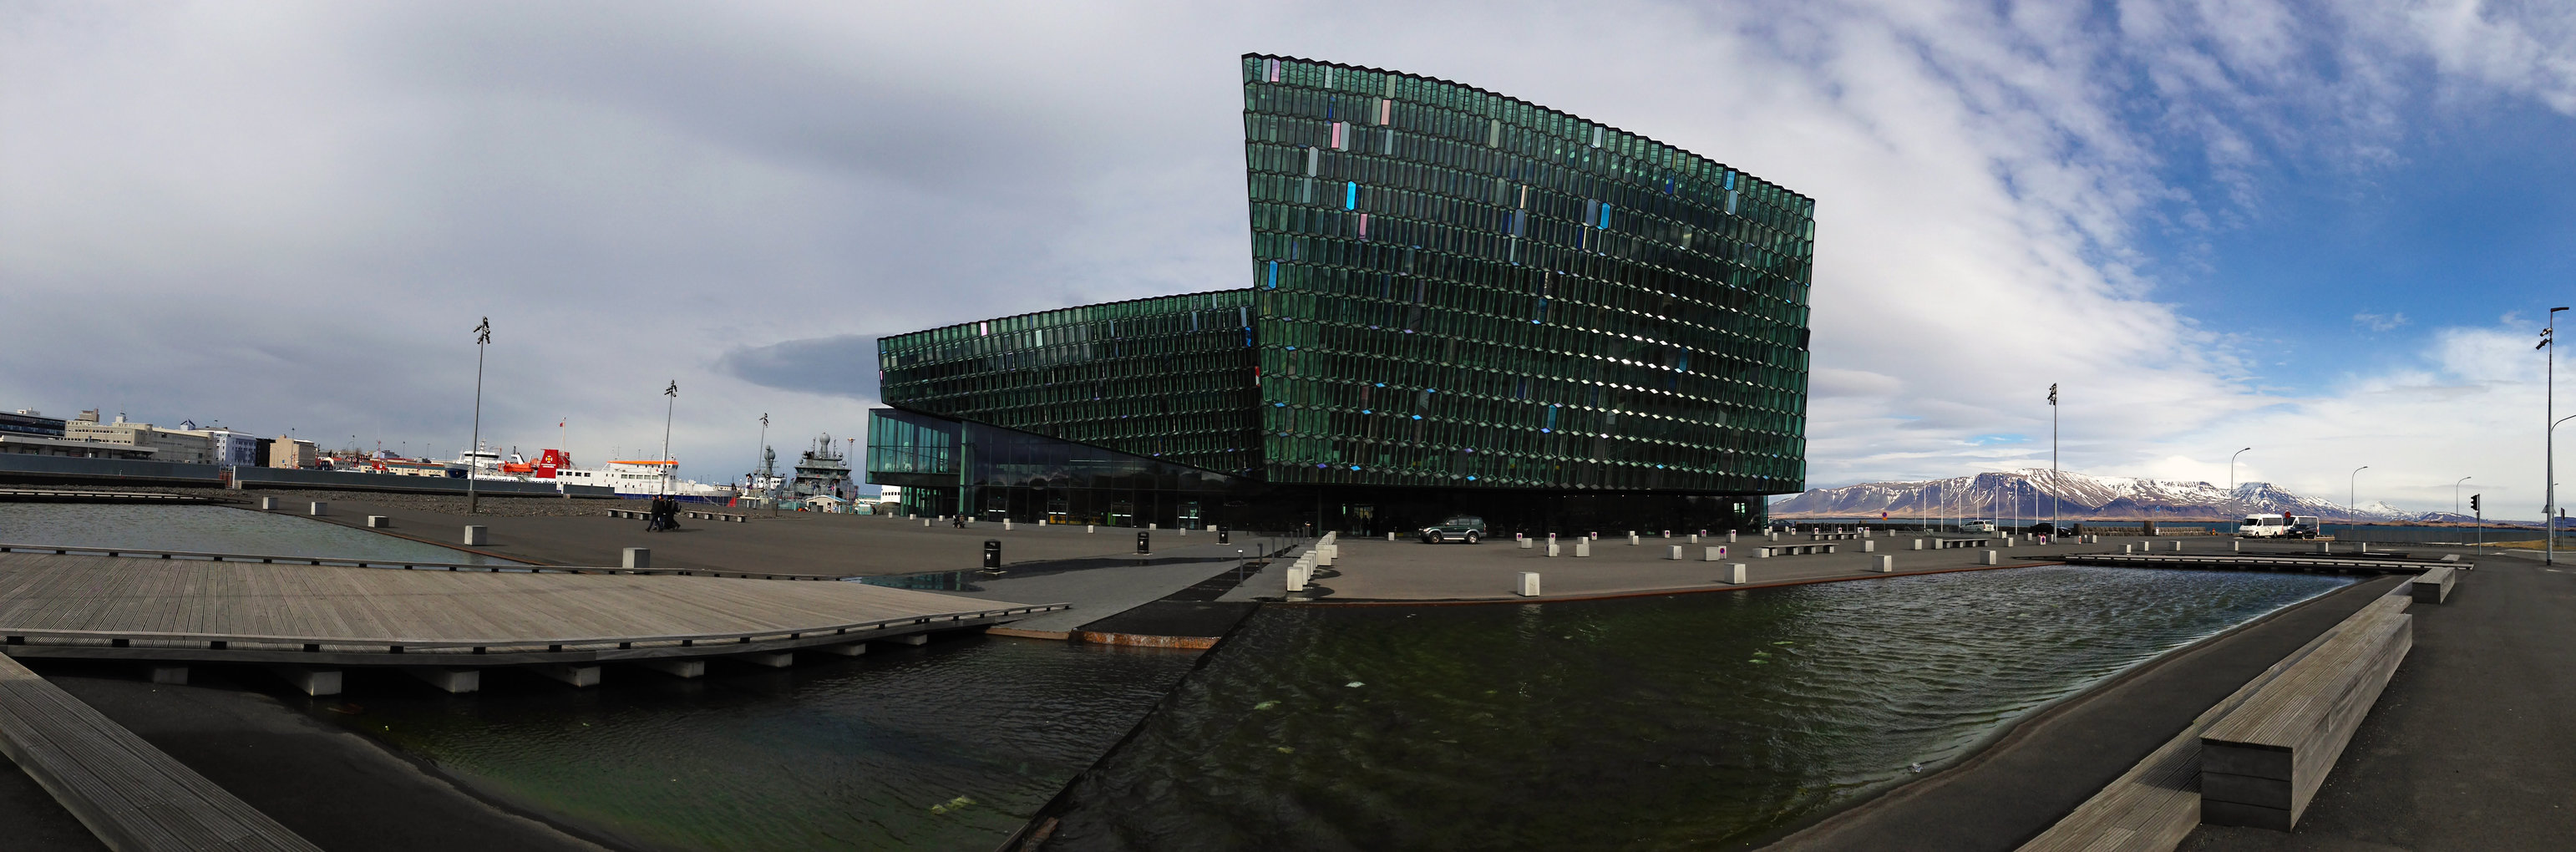 © CORDAY - Iceland - No. 2, Concert Hall